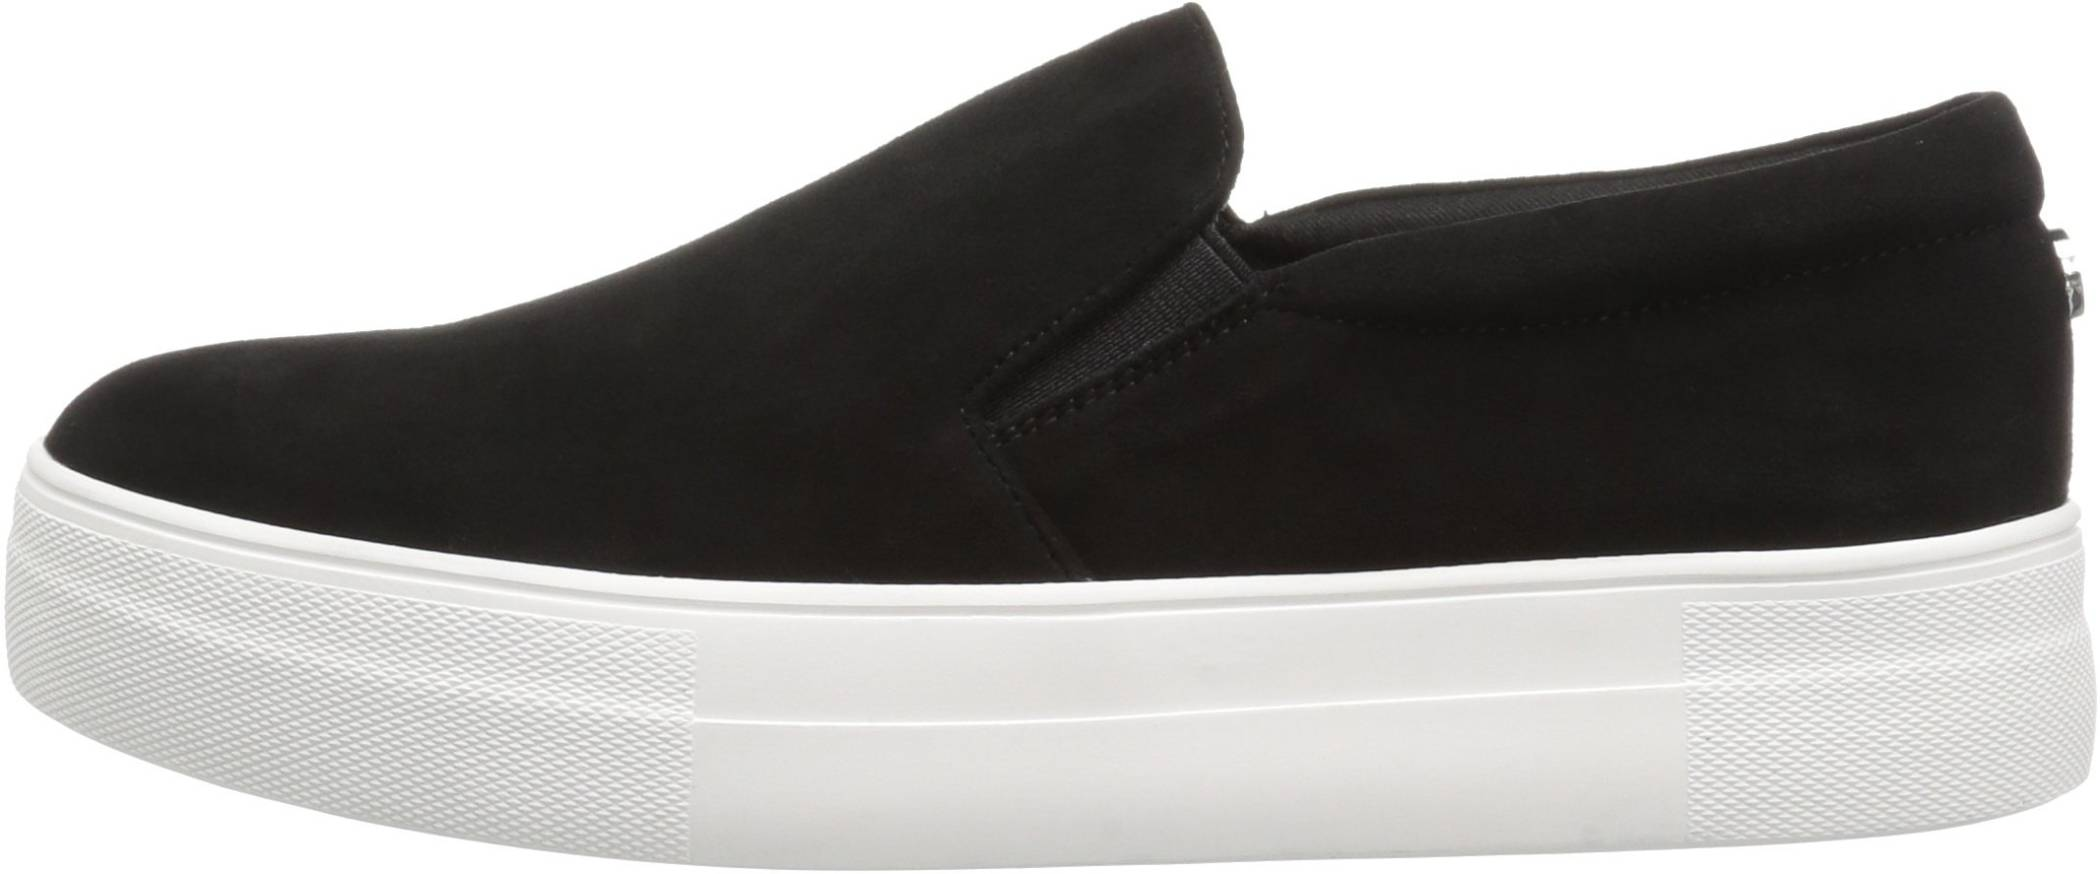 Only $23 + Review of Steve Madden Gills